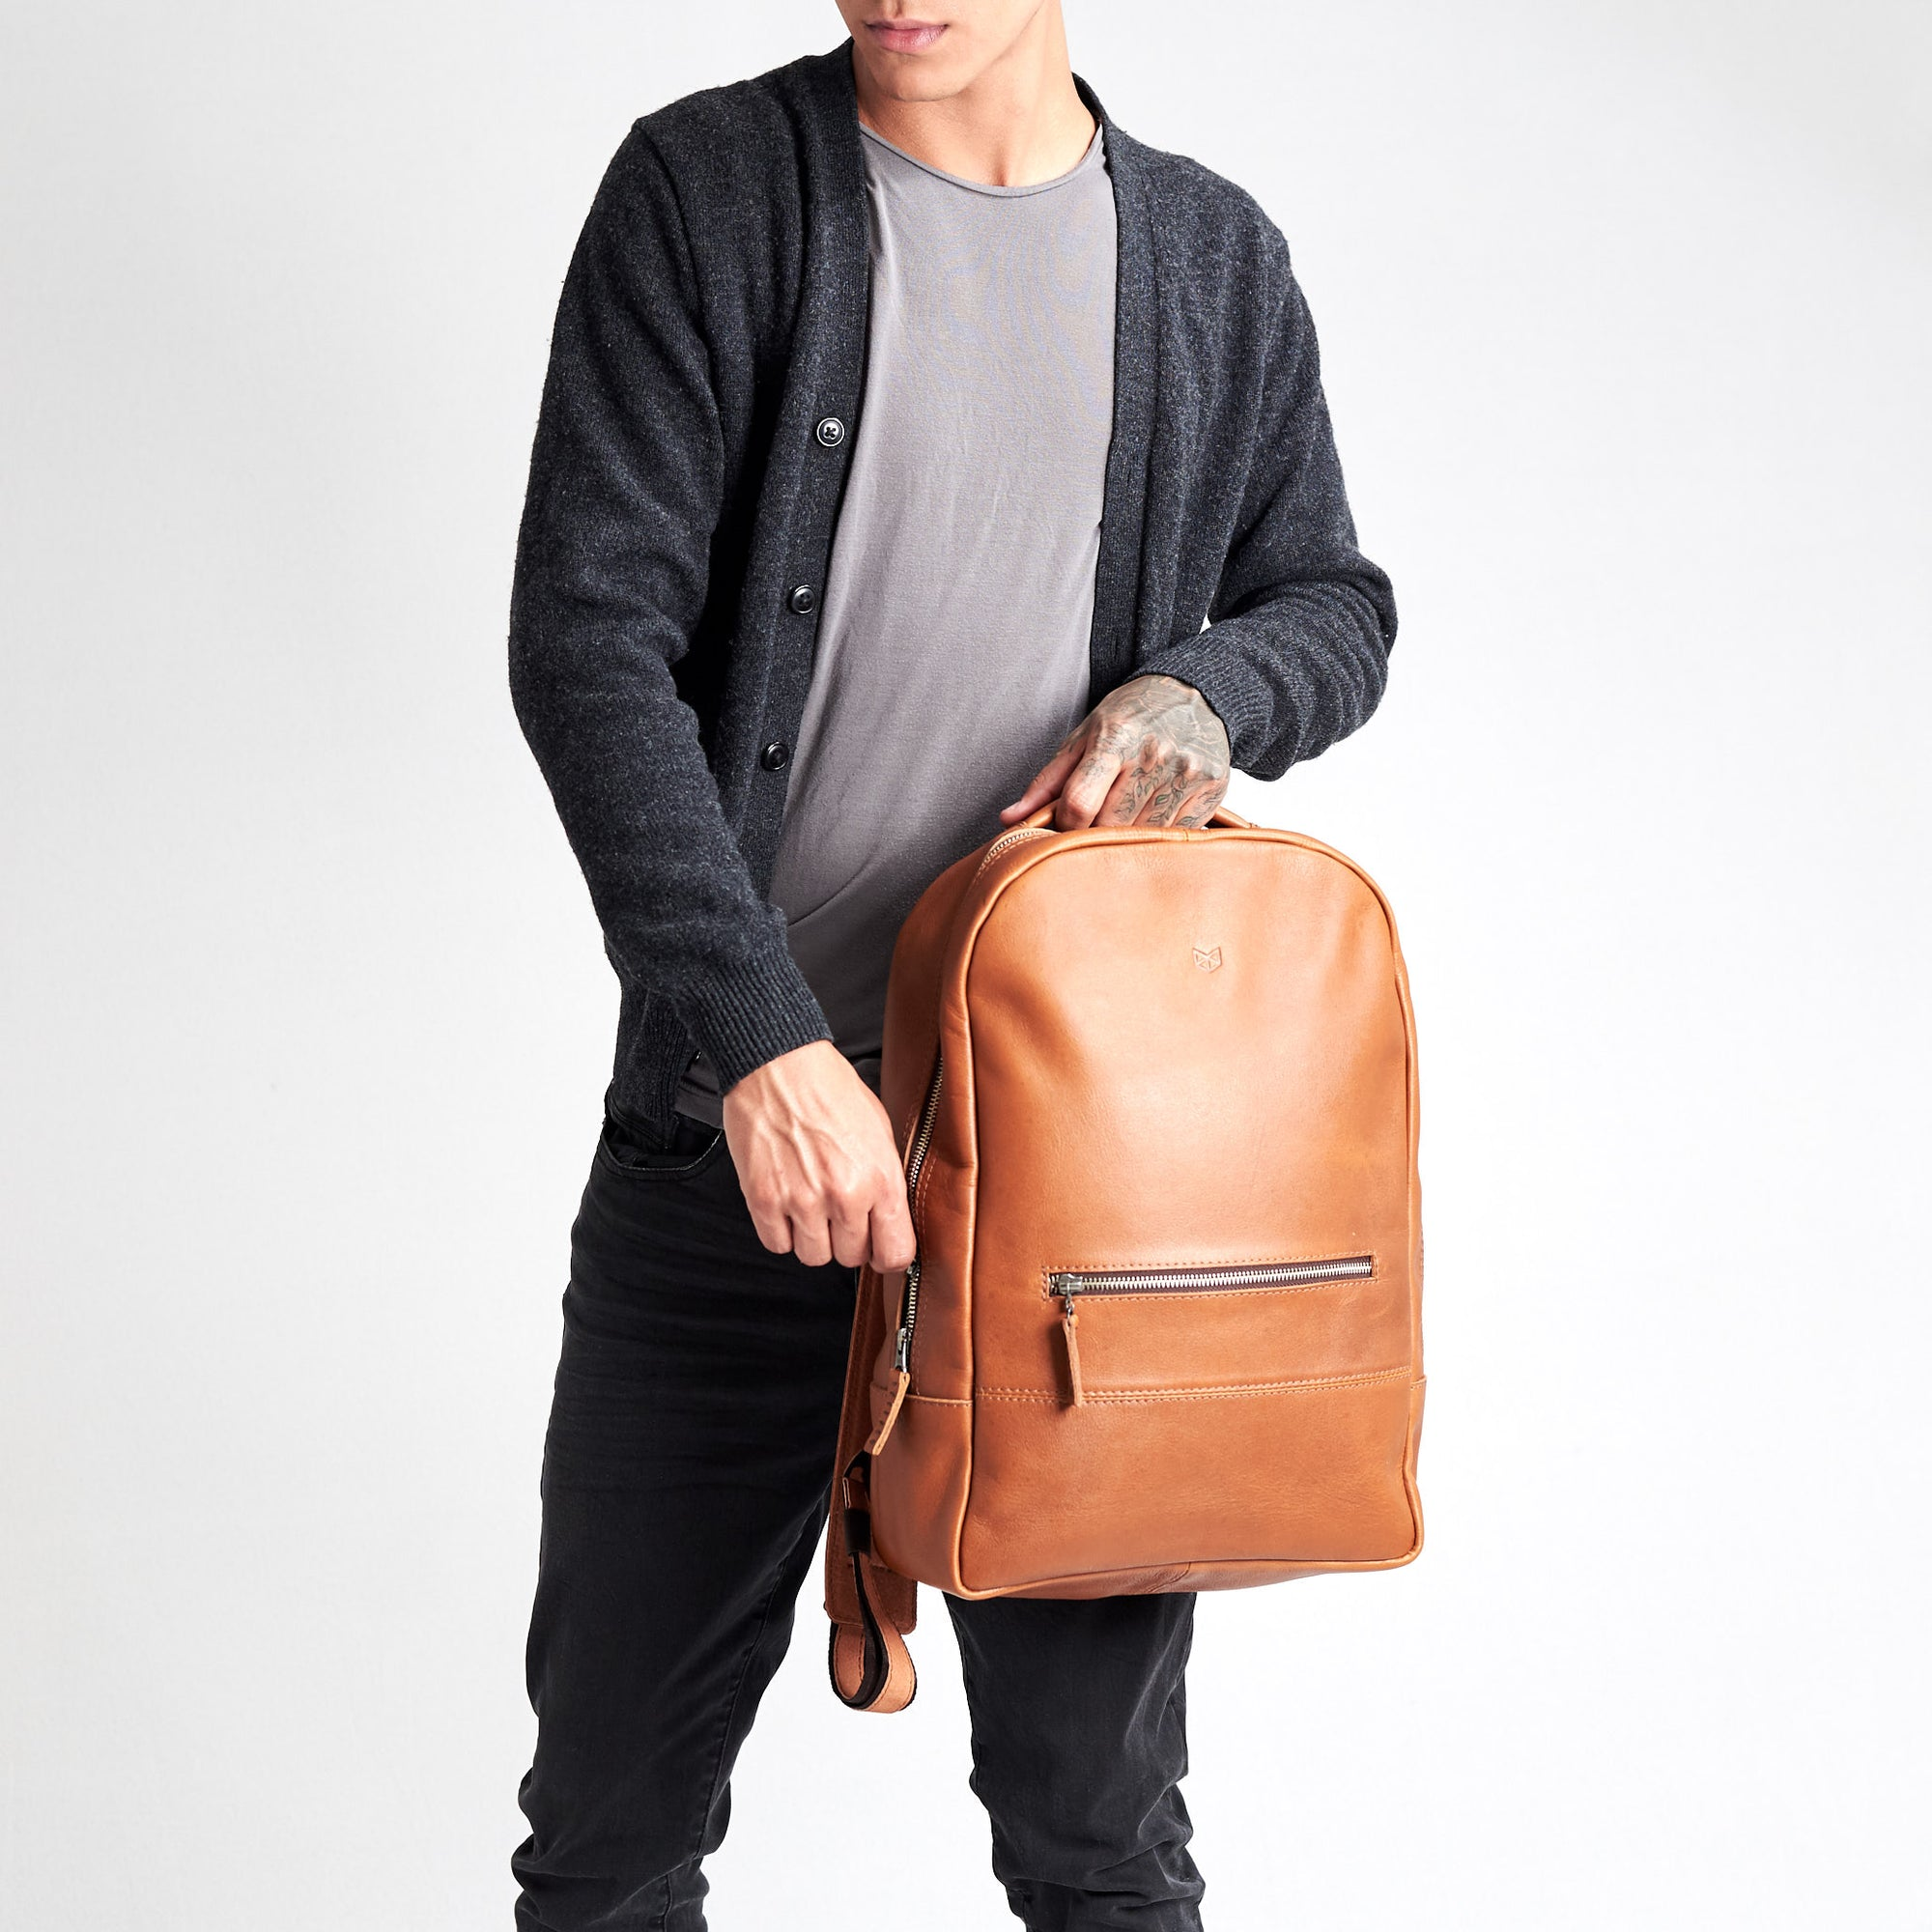 Minimalist tan leather backpack for men. Handmade full grain leather rucksack